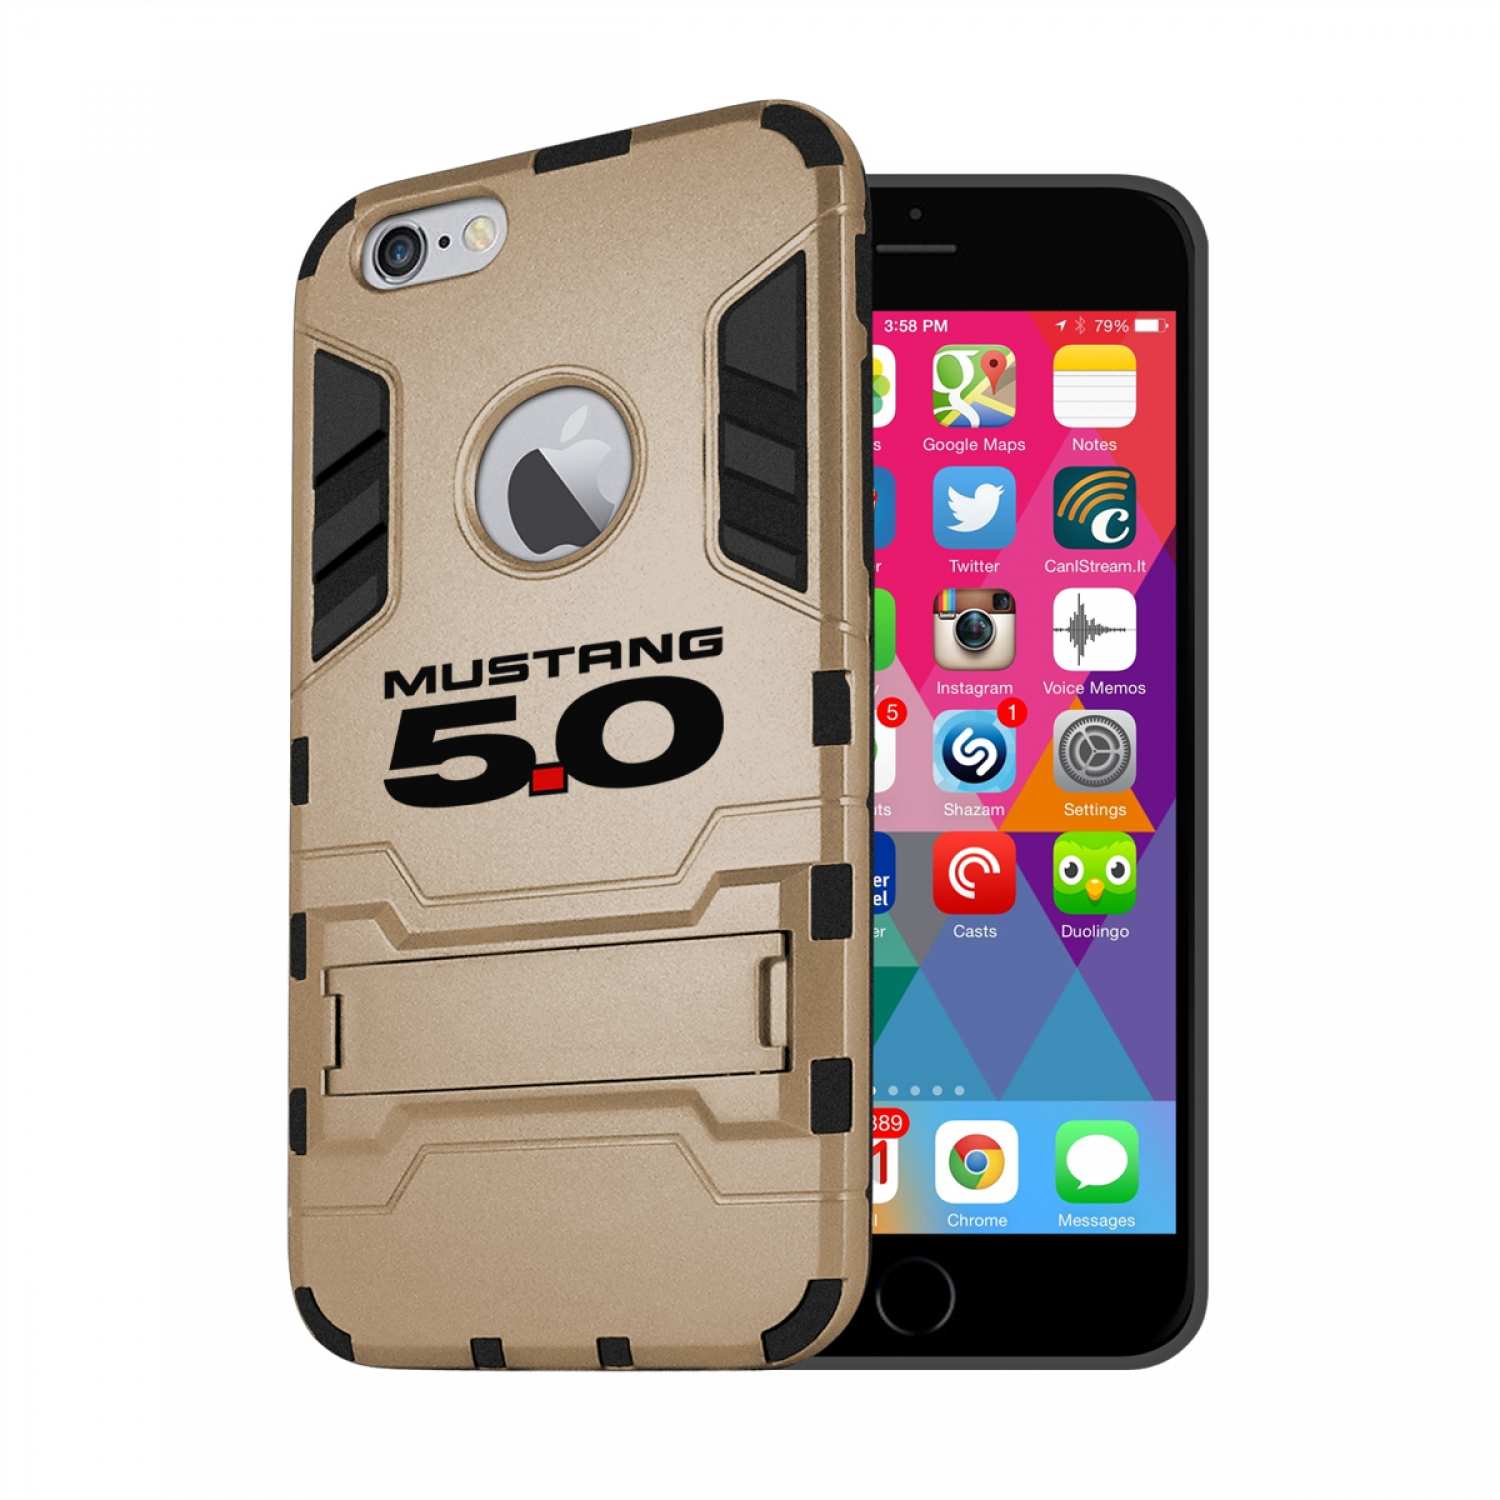 Ford Mustang 5.0 iPhone 6 6s Shockproof TPU ABS Hybrid Golden Phone Case